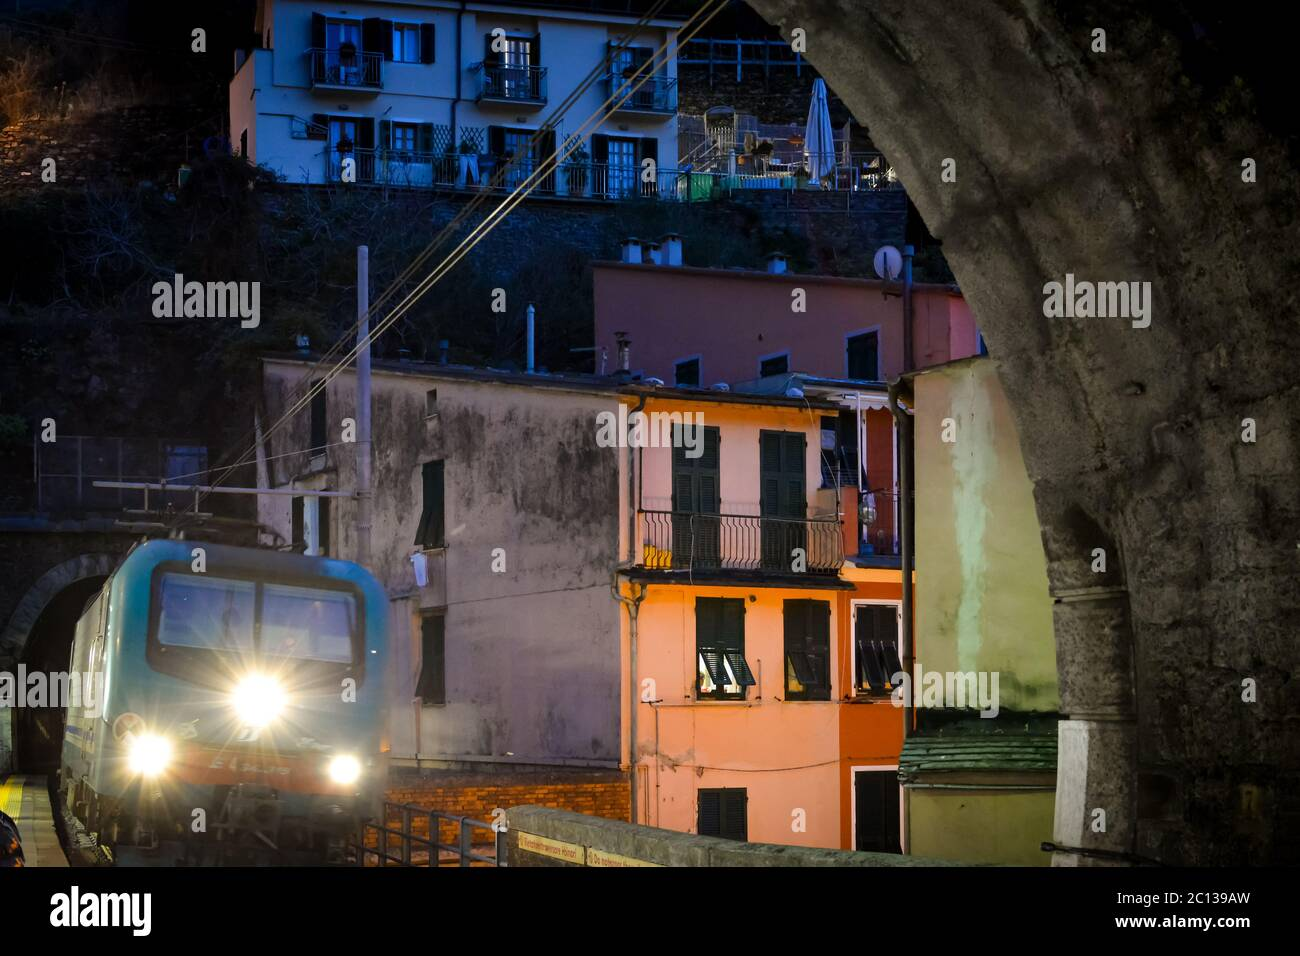 A night train's headlights shine as it enters a tunnel in the evening at Vernazza Italy, on the Cinque Terre coast with the hillside town behind Stock Photo